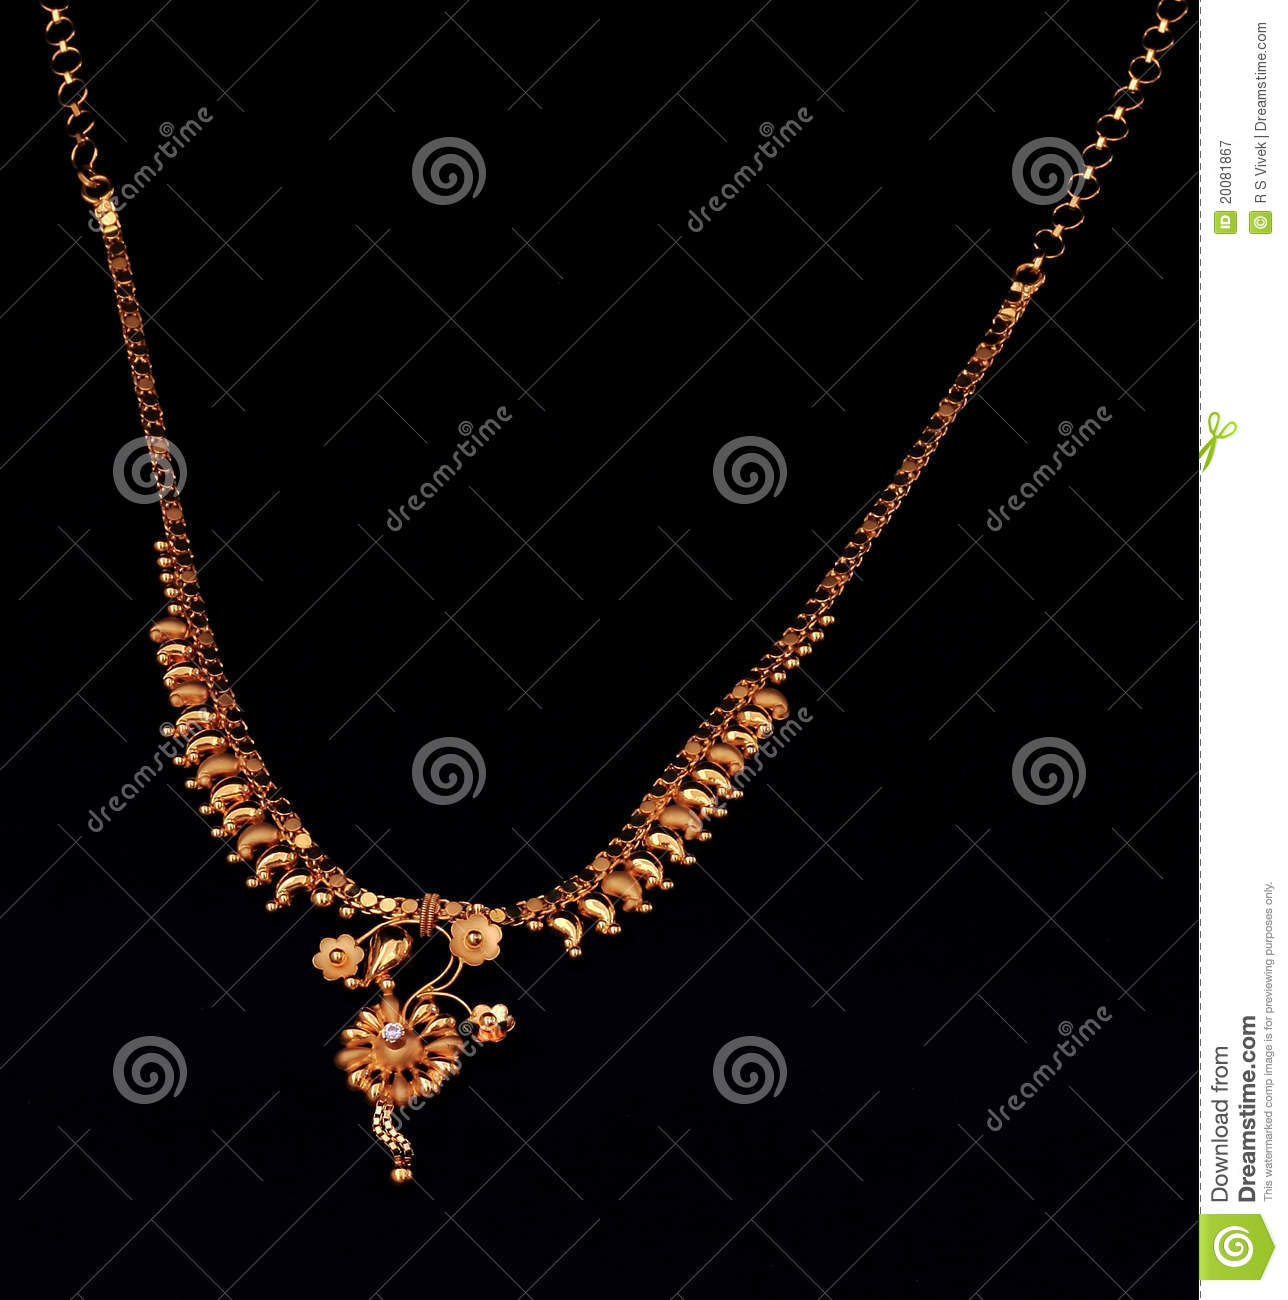 Indian Gold Necklace Stock Images - Download 1,902 Photos